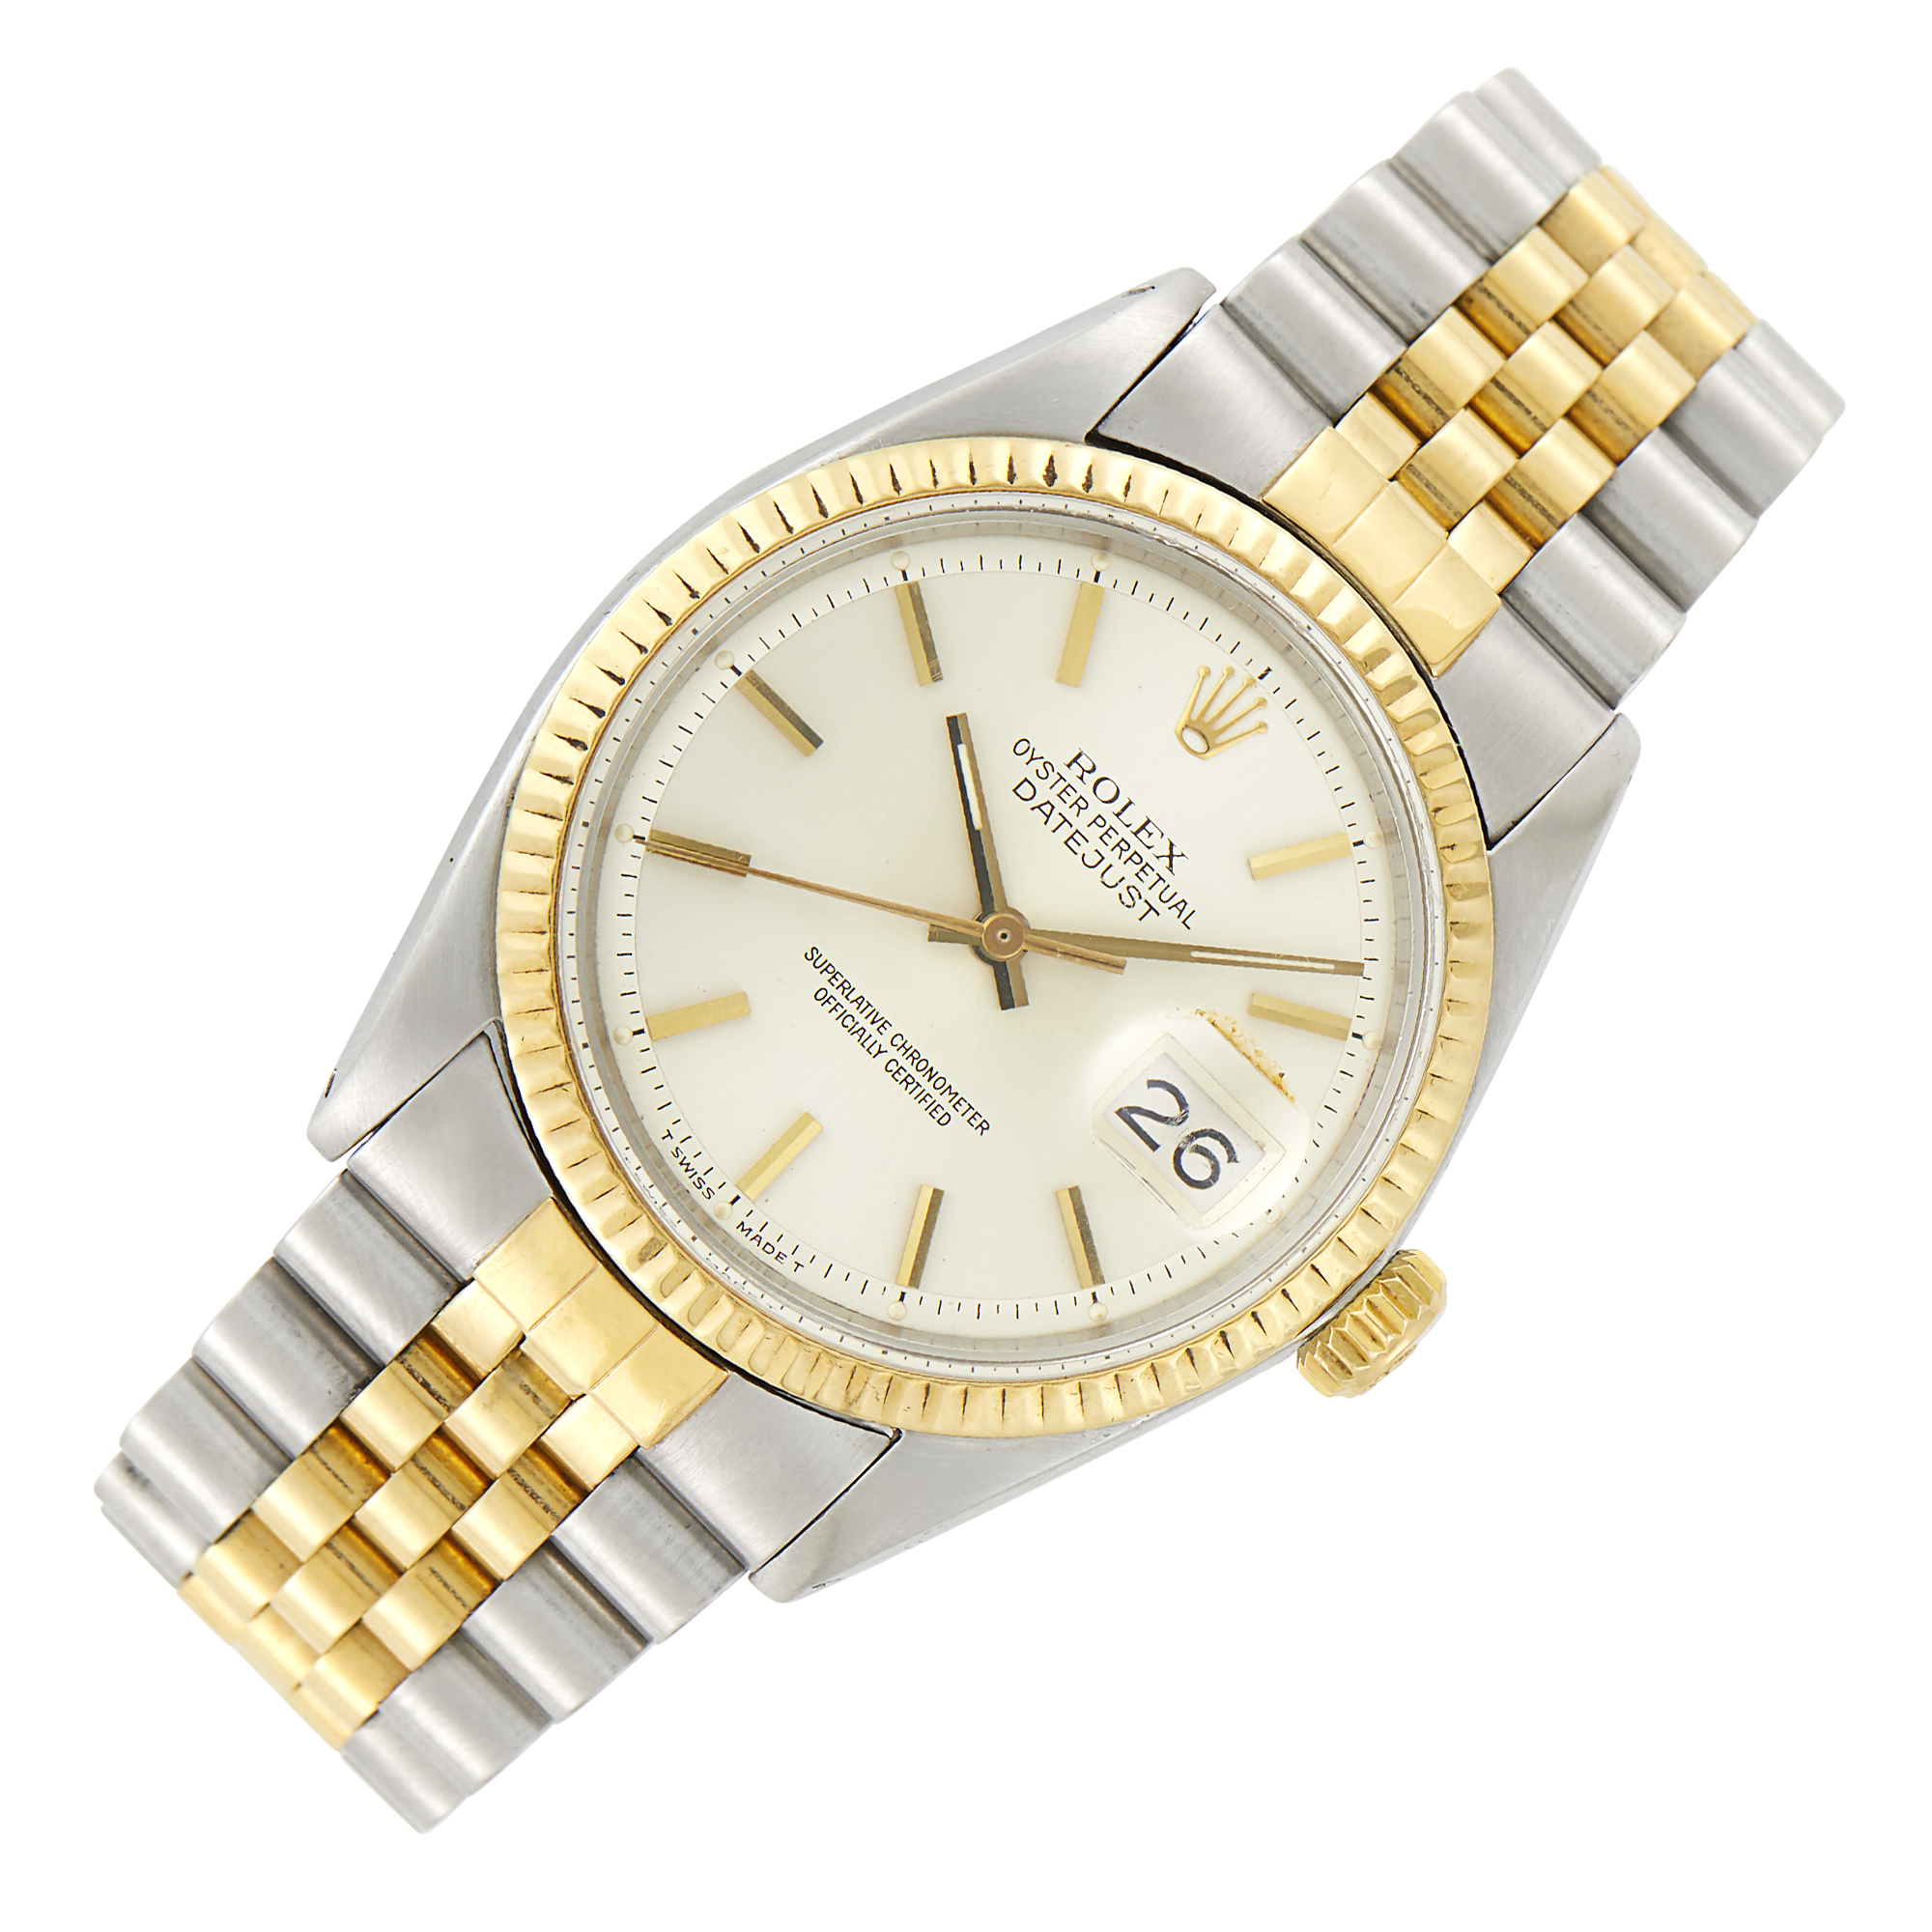 Lot image - Rolex Gentlemans Stainless Steel and Gold Oyster Perpetual Datejust Wristwatch, Ref. 1601